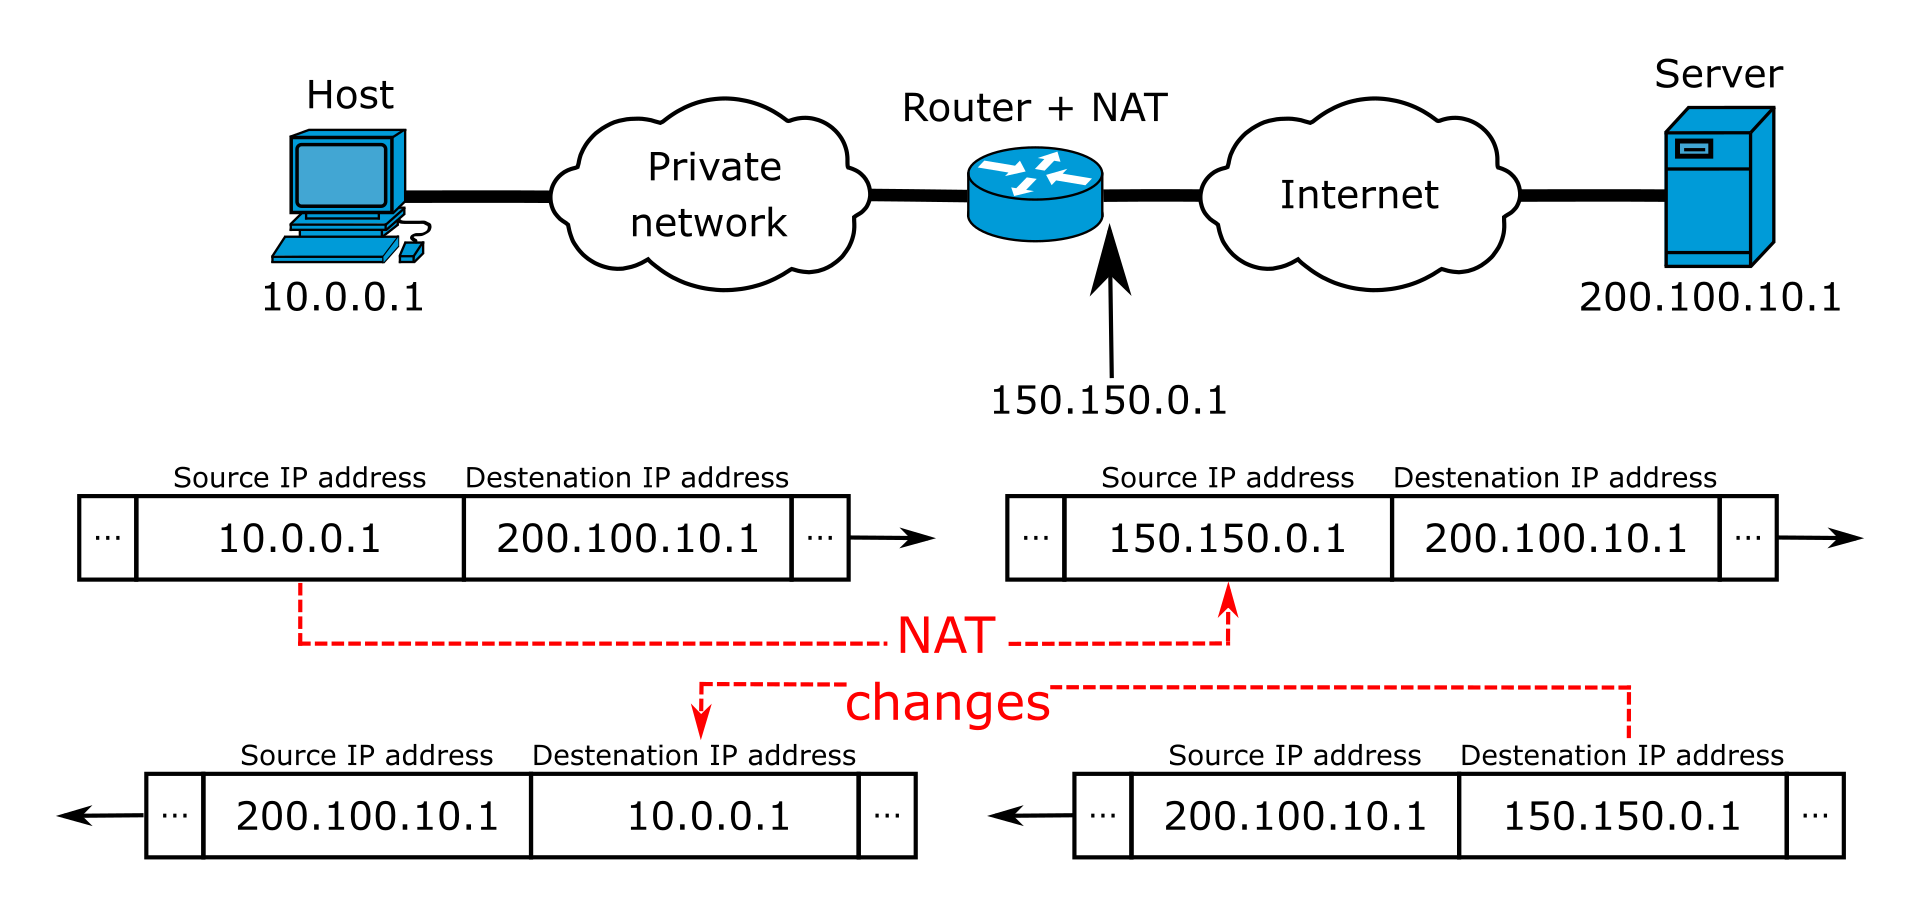 Network address translation between a private network and the Internet